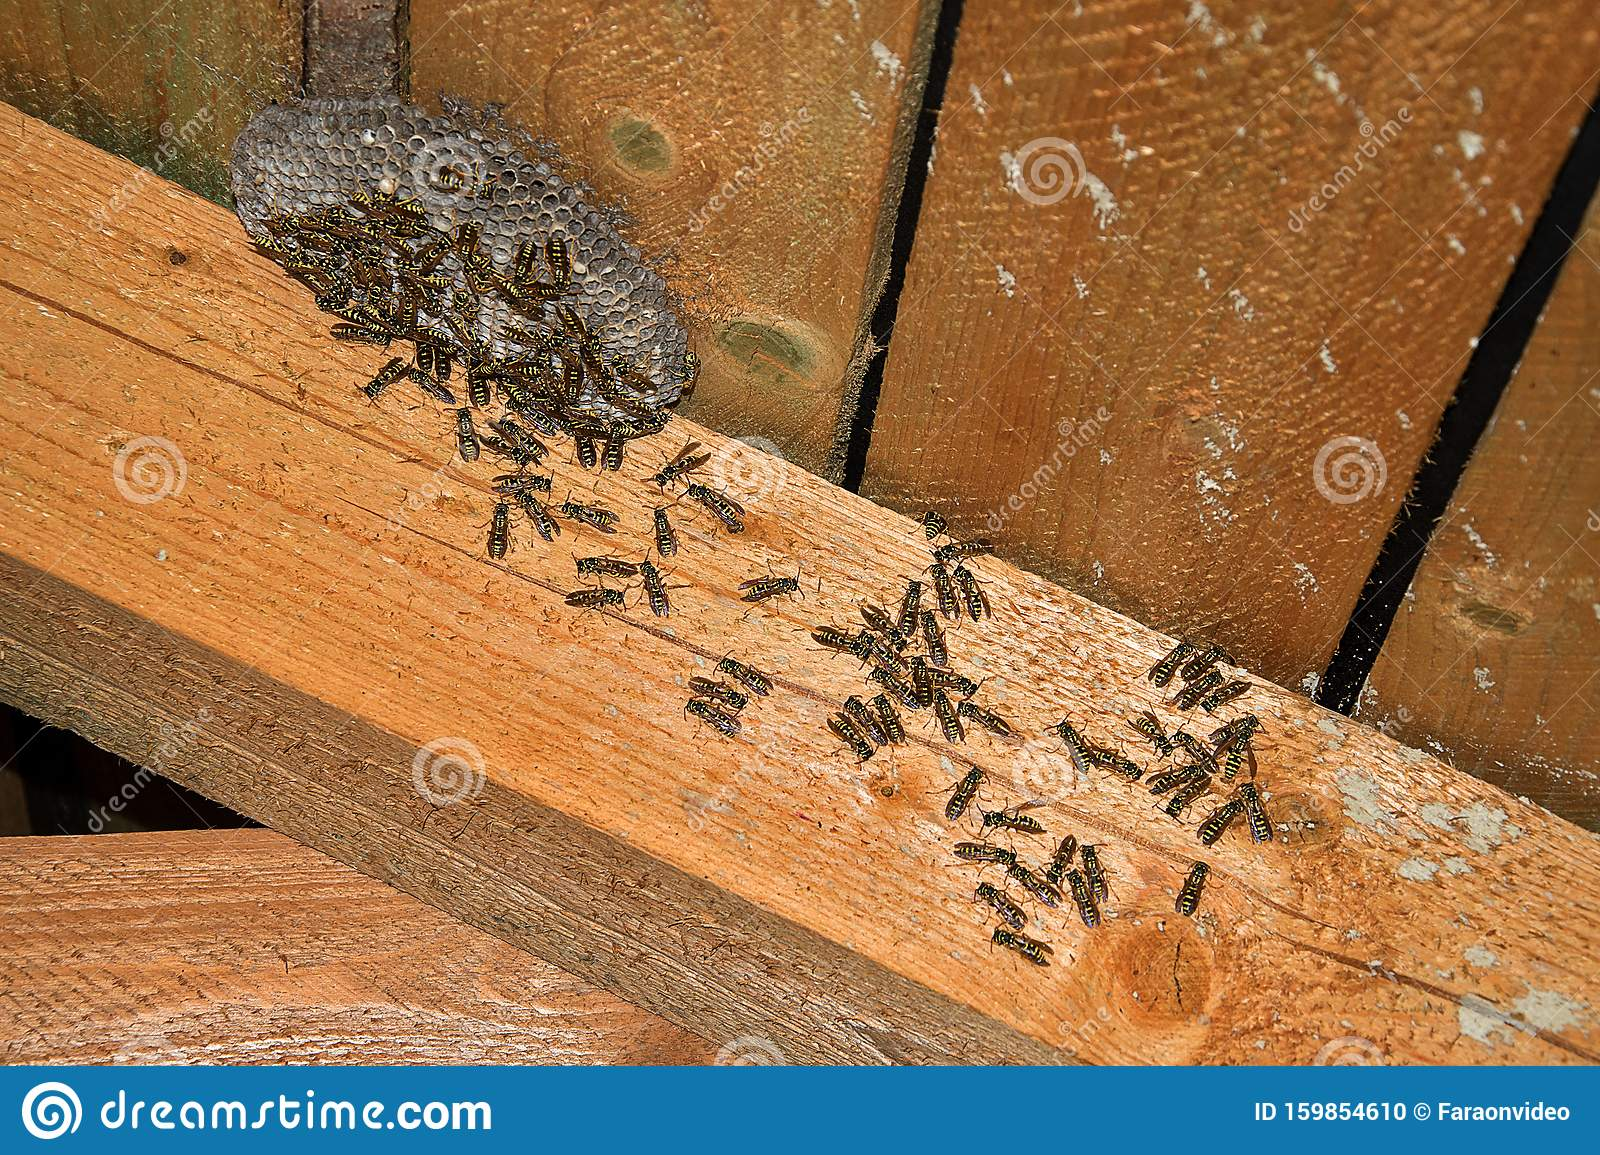 Vespula Vulgaris. Wasp Nest In The Attic Of The House ...